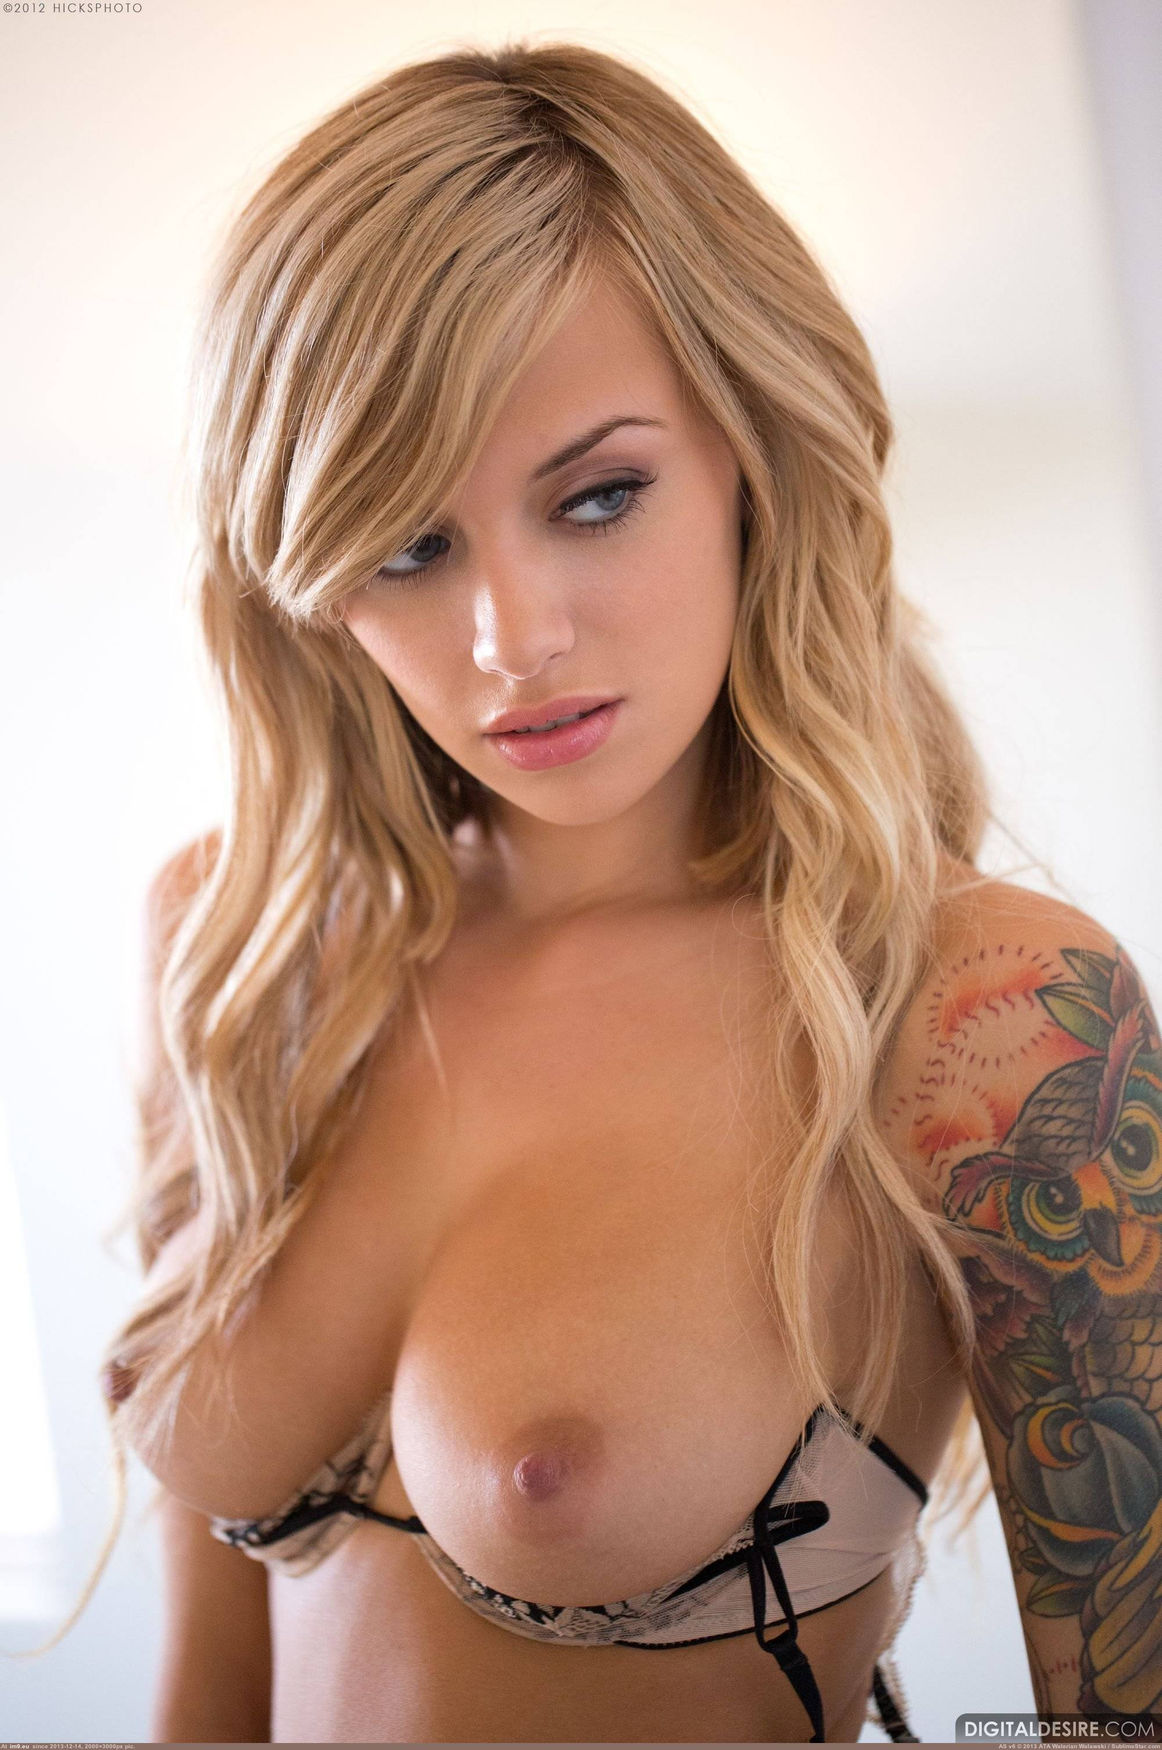 Name: Emma Mae, Profession: Porn Star, Ethnicity: Caucasian, Nationality: United States, Place o ...